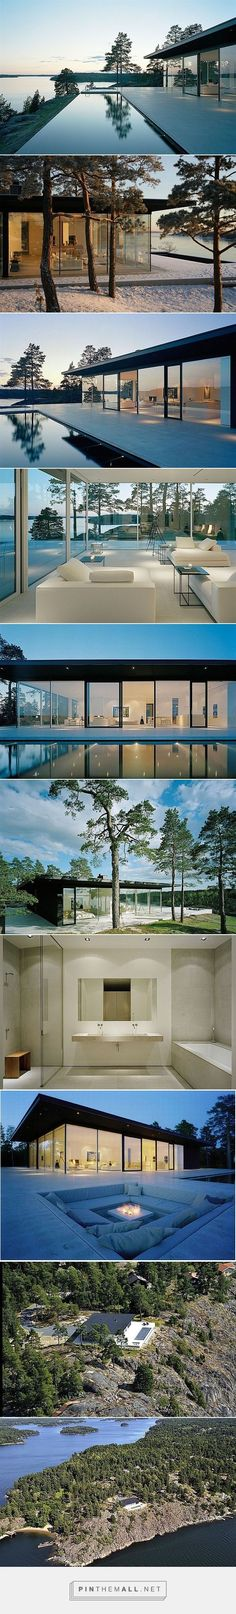 Stunning Swedish Villa With Lake Views modern/contemporary art. The house was designed by John Robert Nilsson to prove the seamless connection between nature and design. There is a lavish swimming pool that looks more like an infinity pool, floor to ceili Architecture Design, Amazing Architecture, Terrasse Design, Casas Containers, Design Exterior, Bungalows, House Goals, Modern House Design, Future House